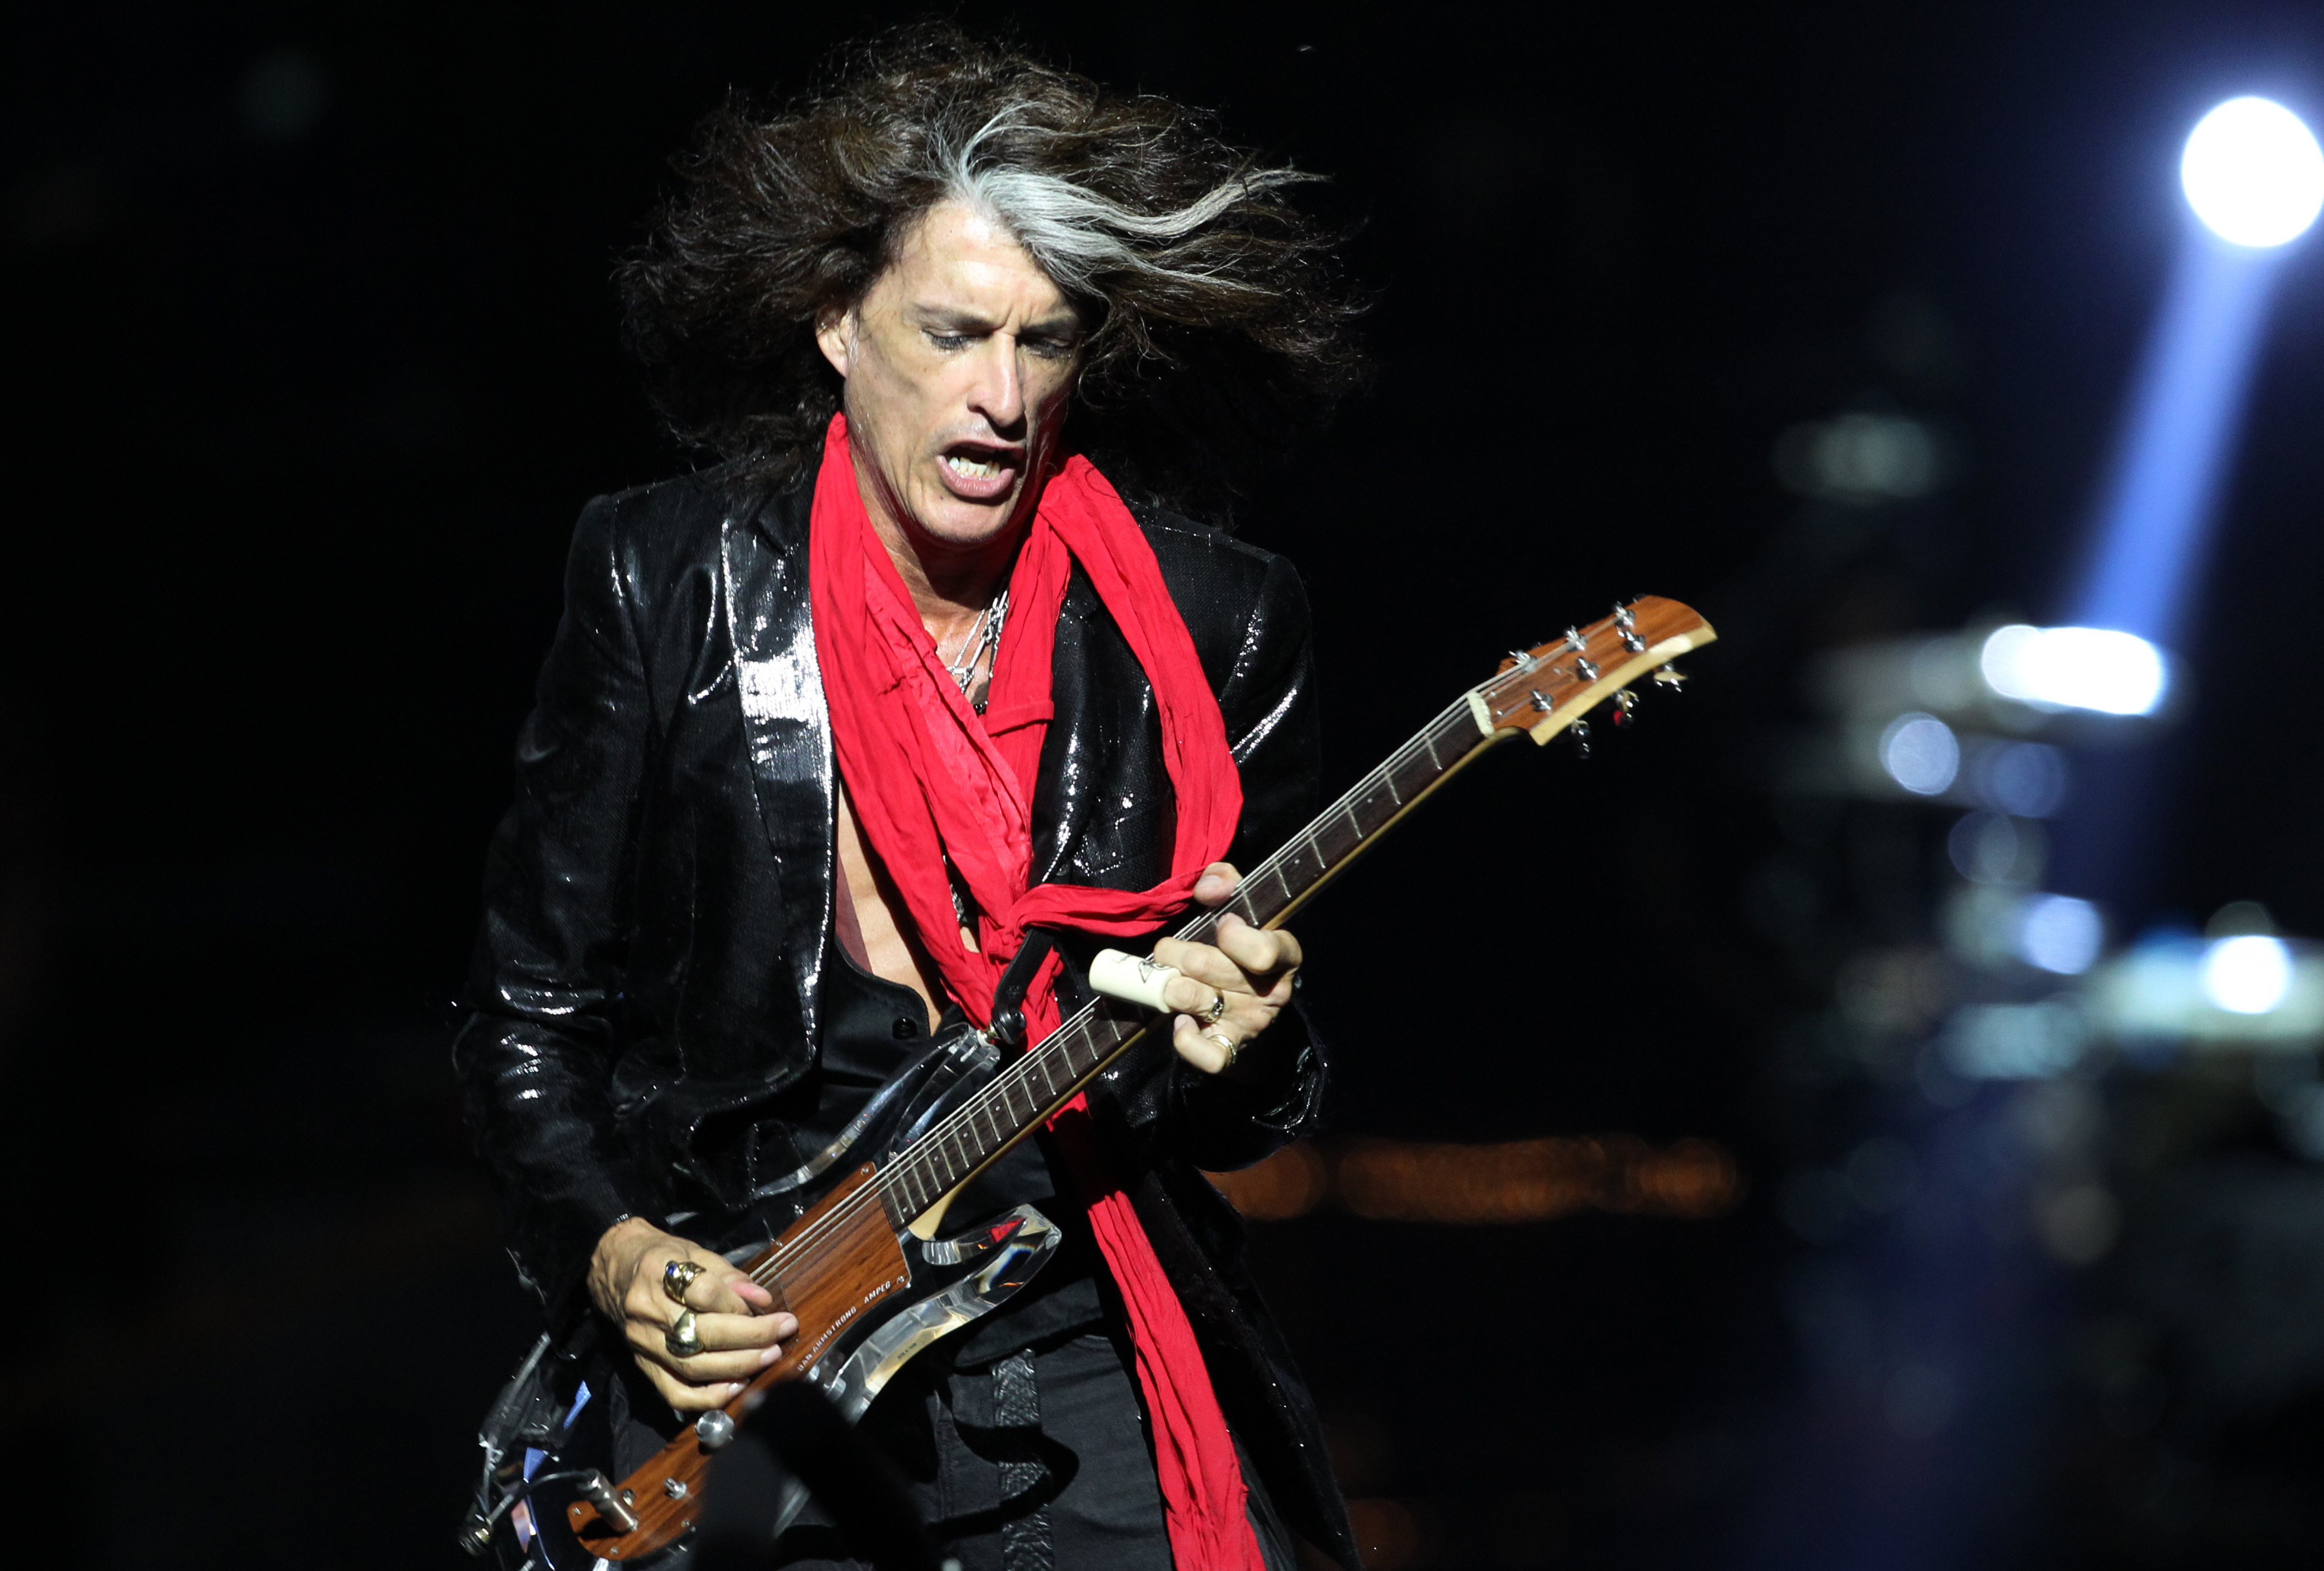 Lead guitarist Joe Perry, of American rock band Aerosmith, performs in Singapore on May 25, 2013.